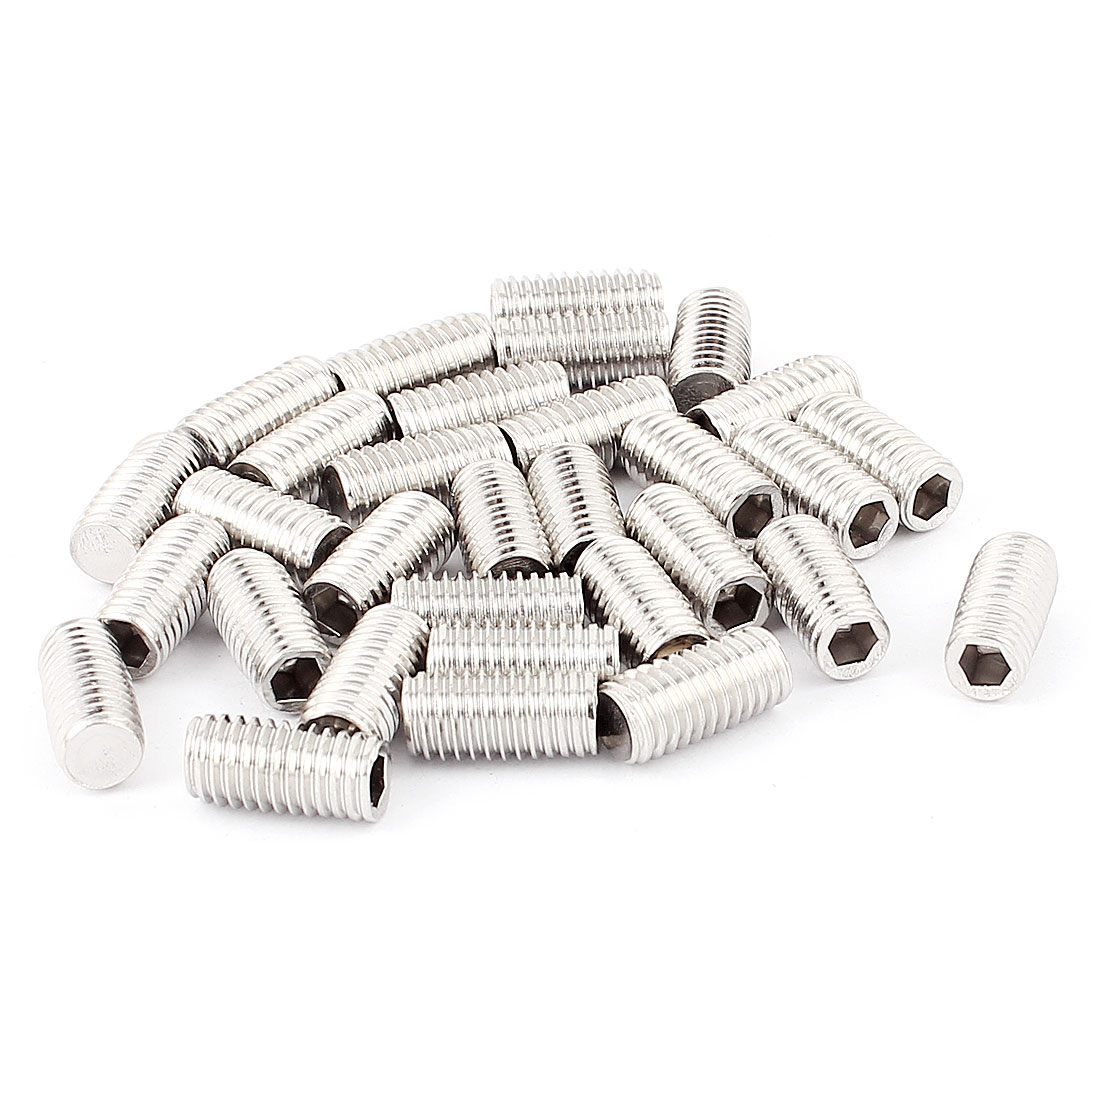 30pcs M8 x 16mm Threaded Hex Drive Socket Set Screws Silver Tone